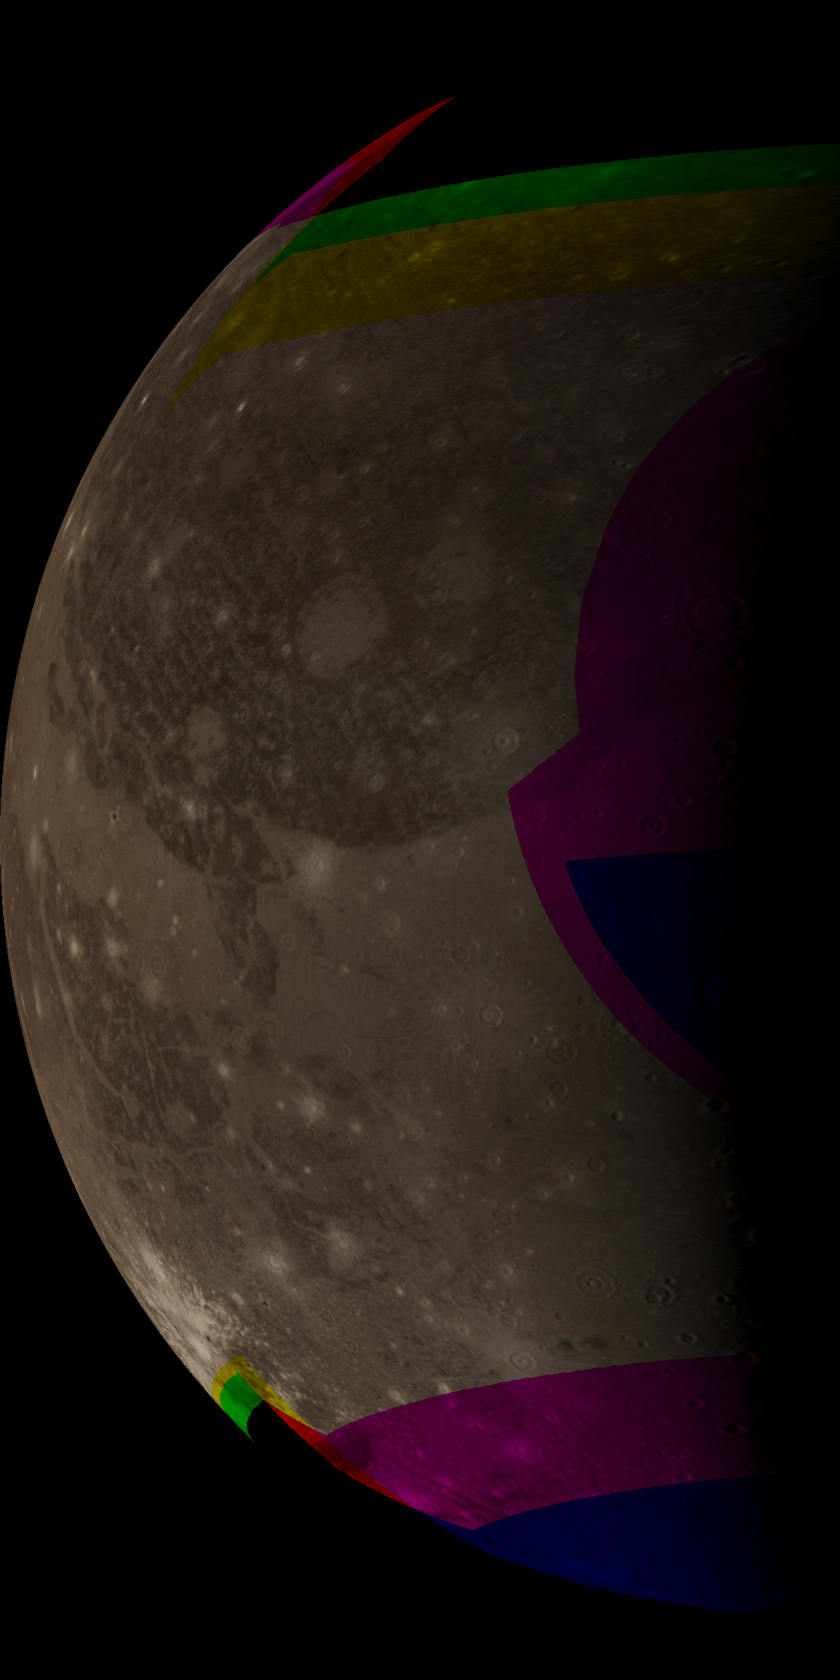 Ganymede's leading hemisphere from Voyager 2